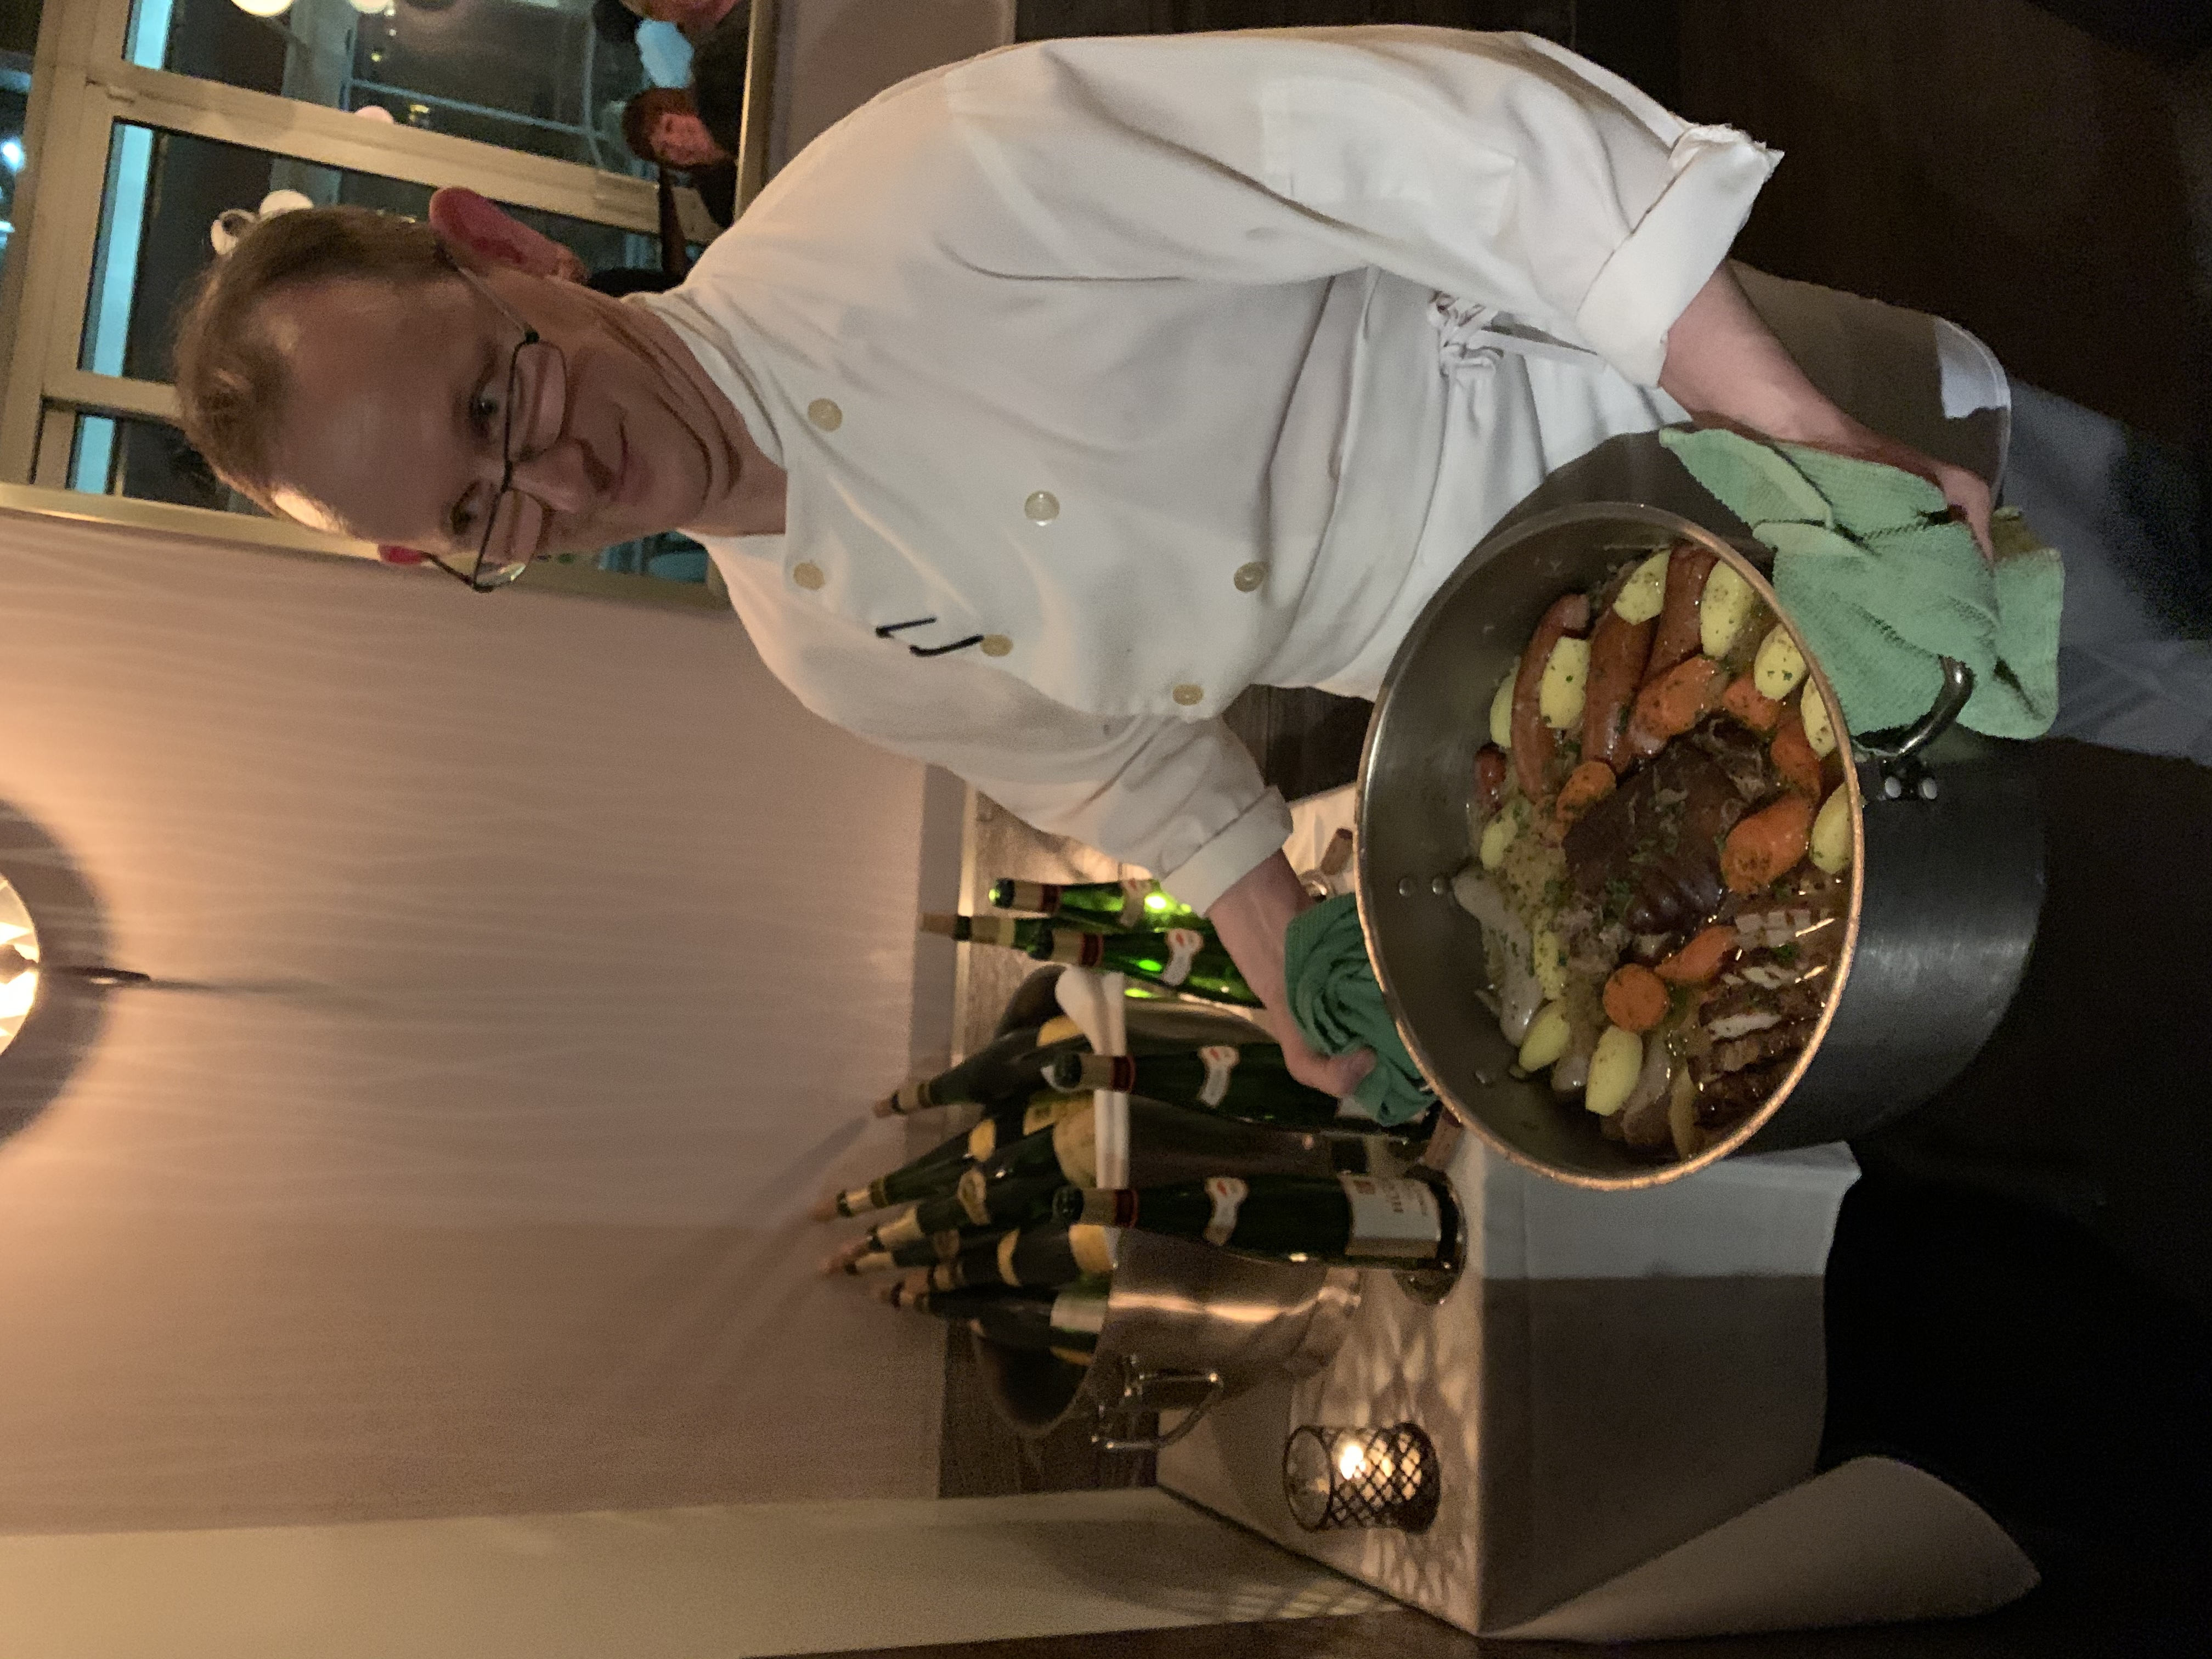 Provence Sous Chef Richard Hondier presenting his Choucroute at Hugel Wine Dinner earlier in 2020